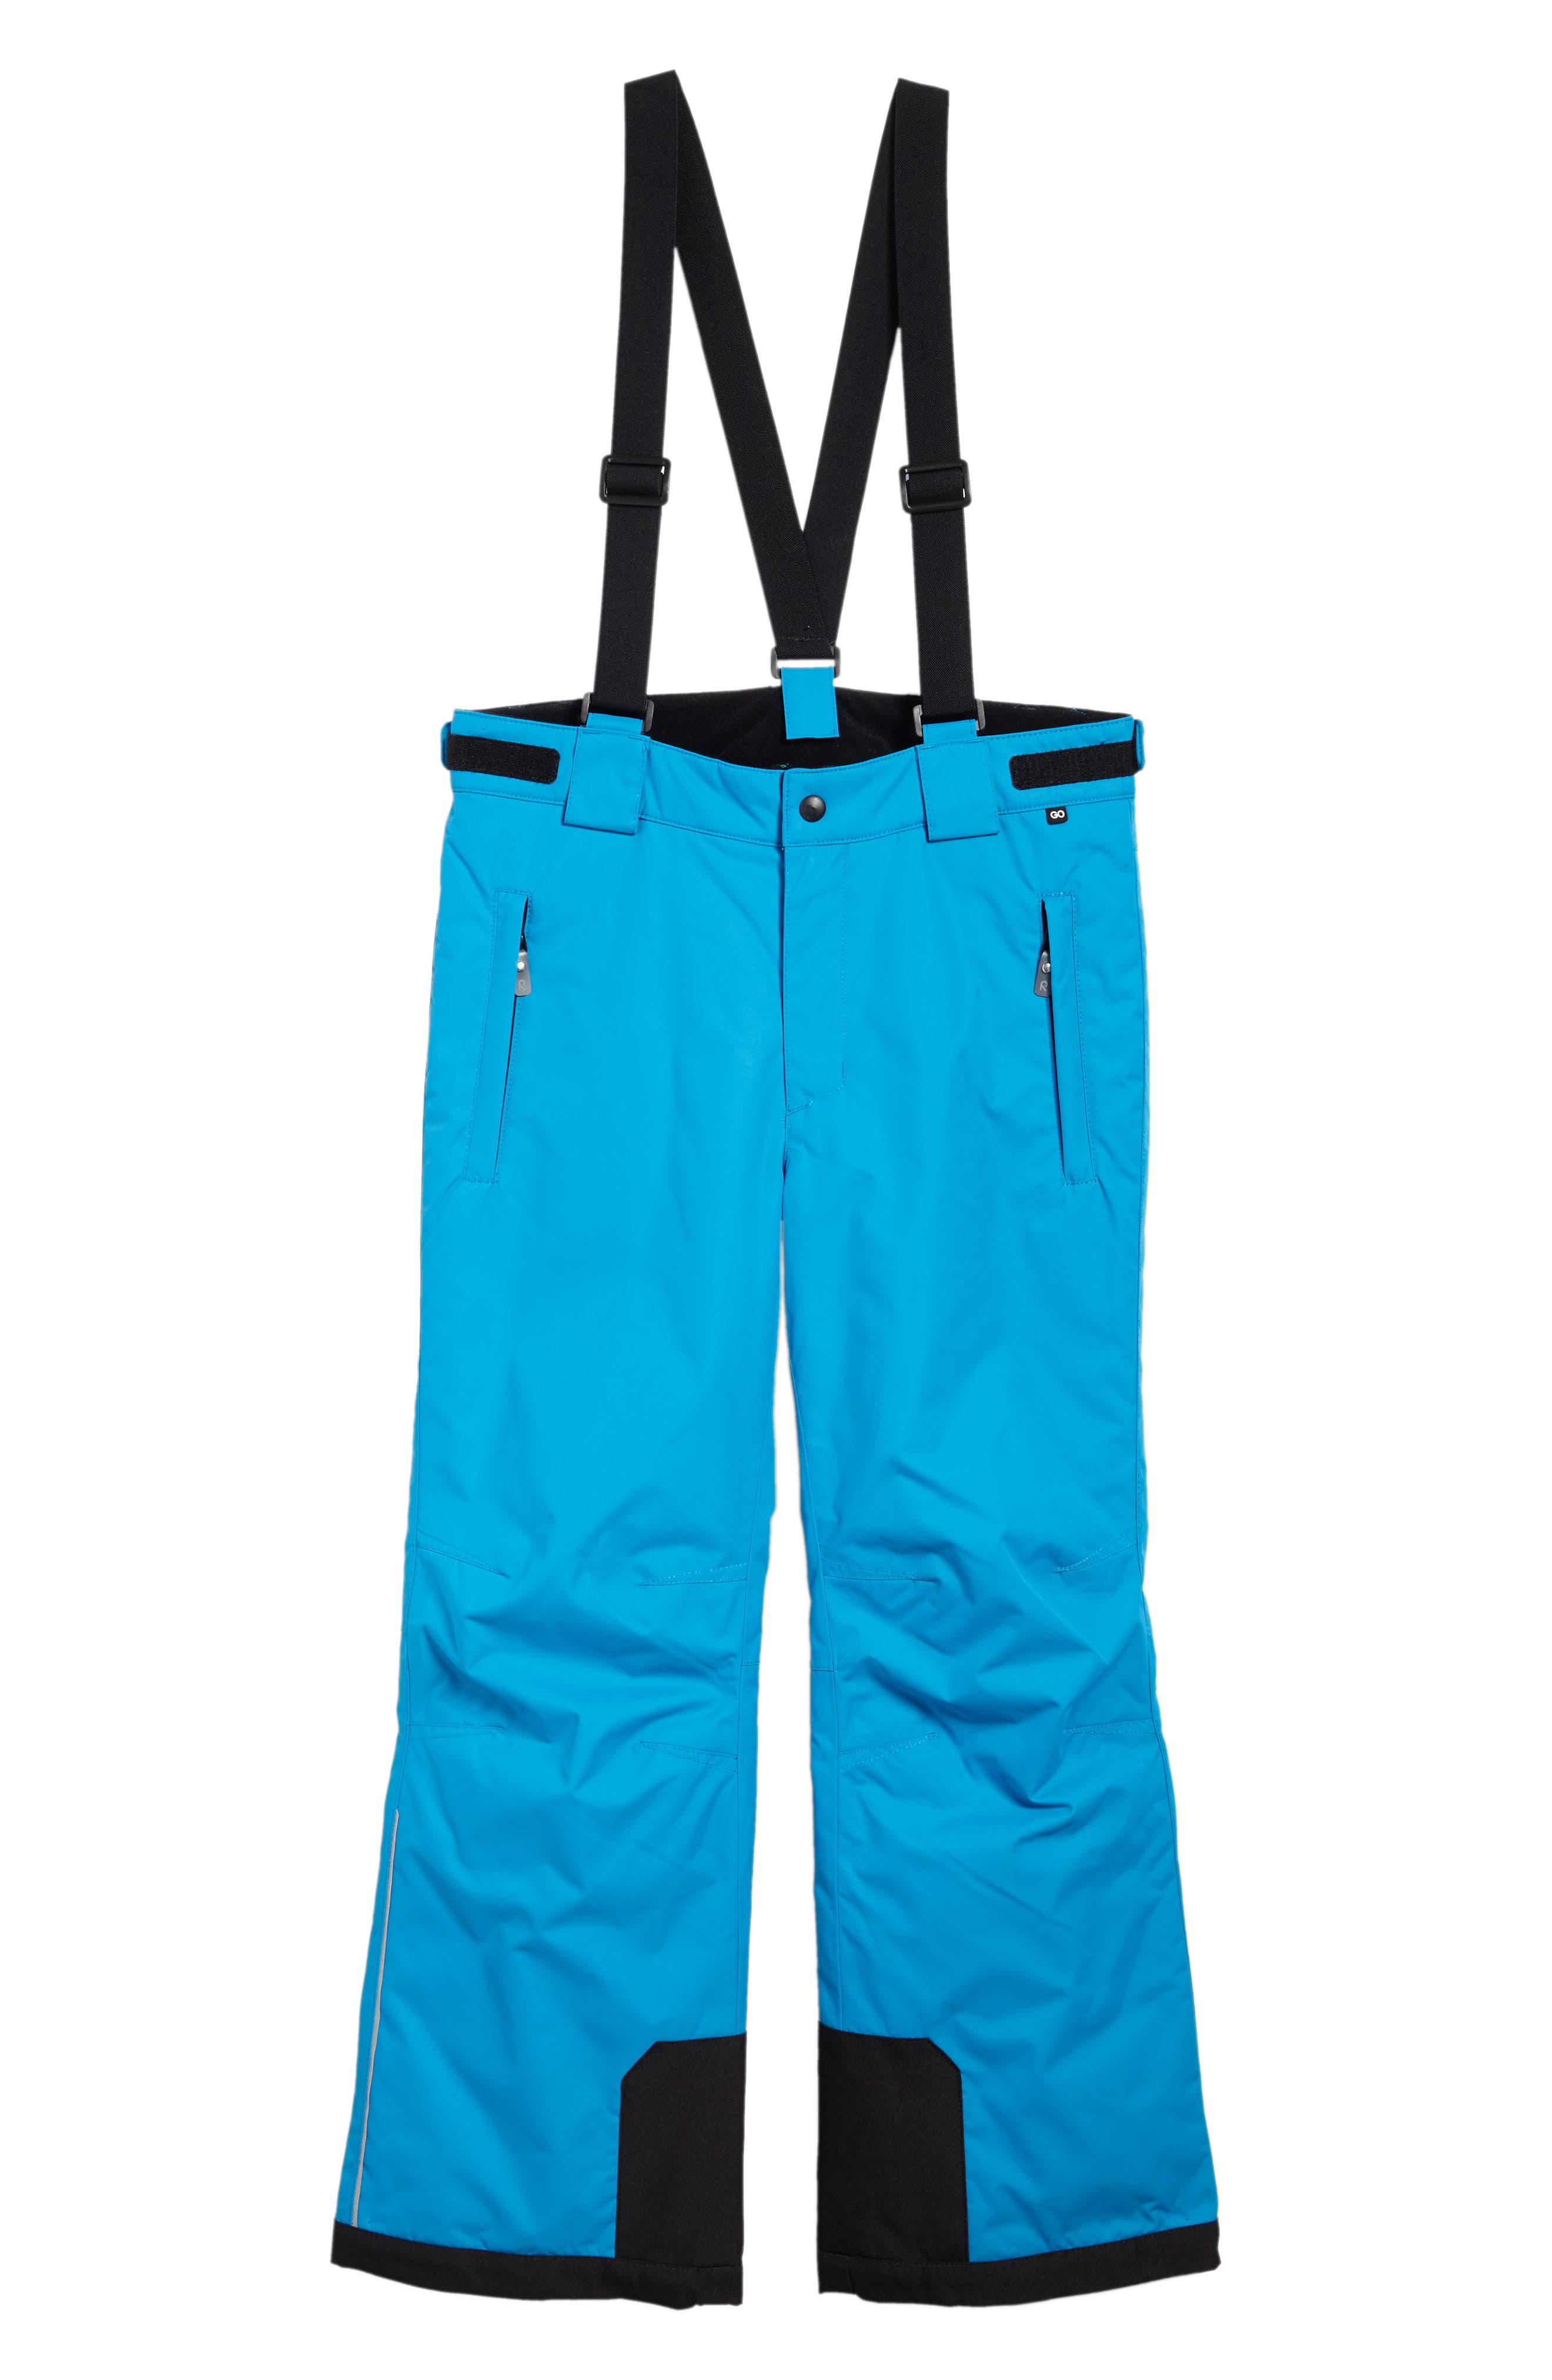 Reimatec<sup>®</sup> Takeoff Waterproof Insulated Snow Pants,                             Main thumbnail 1, color,                             Blue